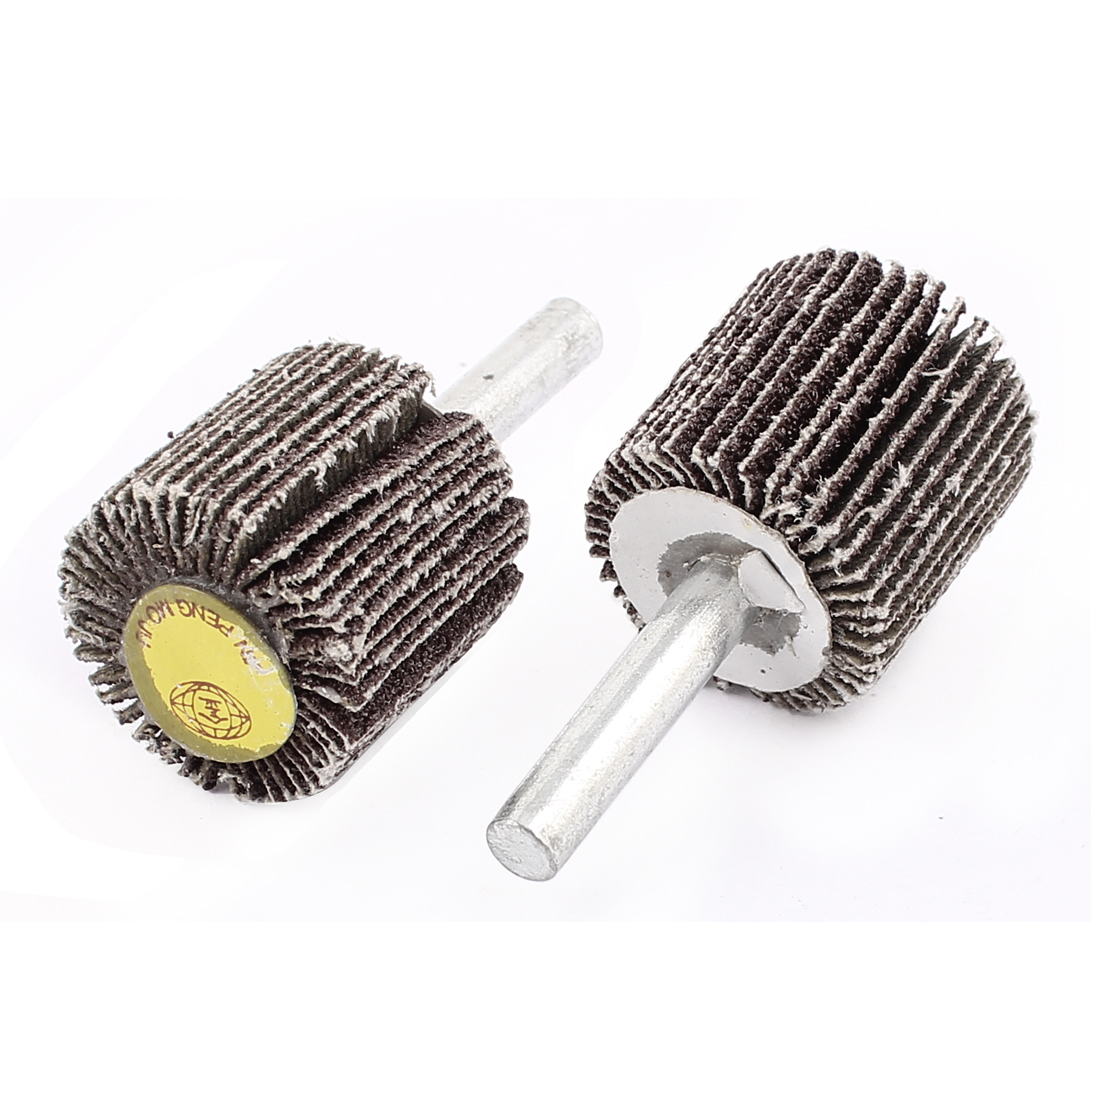 2Pcs 80 Grit 2Cylindrical Grinding Polishing Flap Wheel Discs